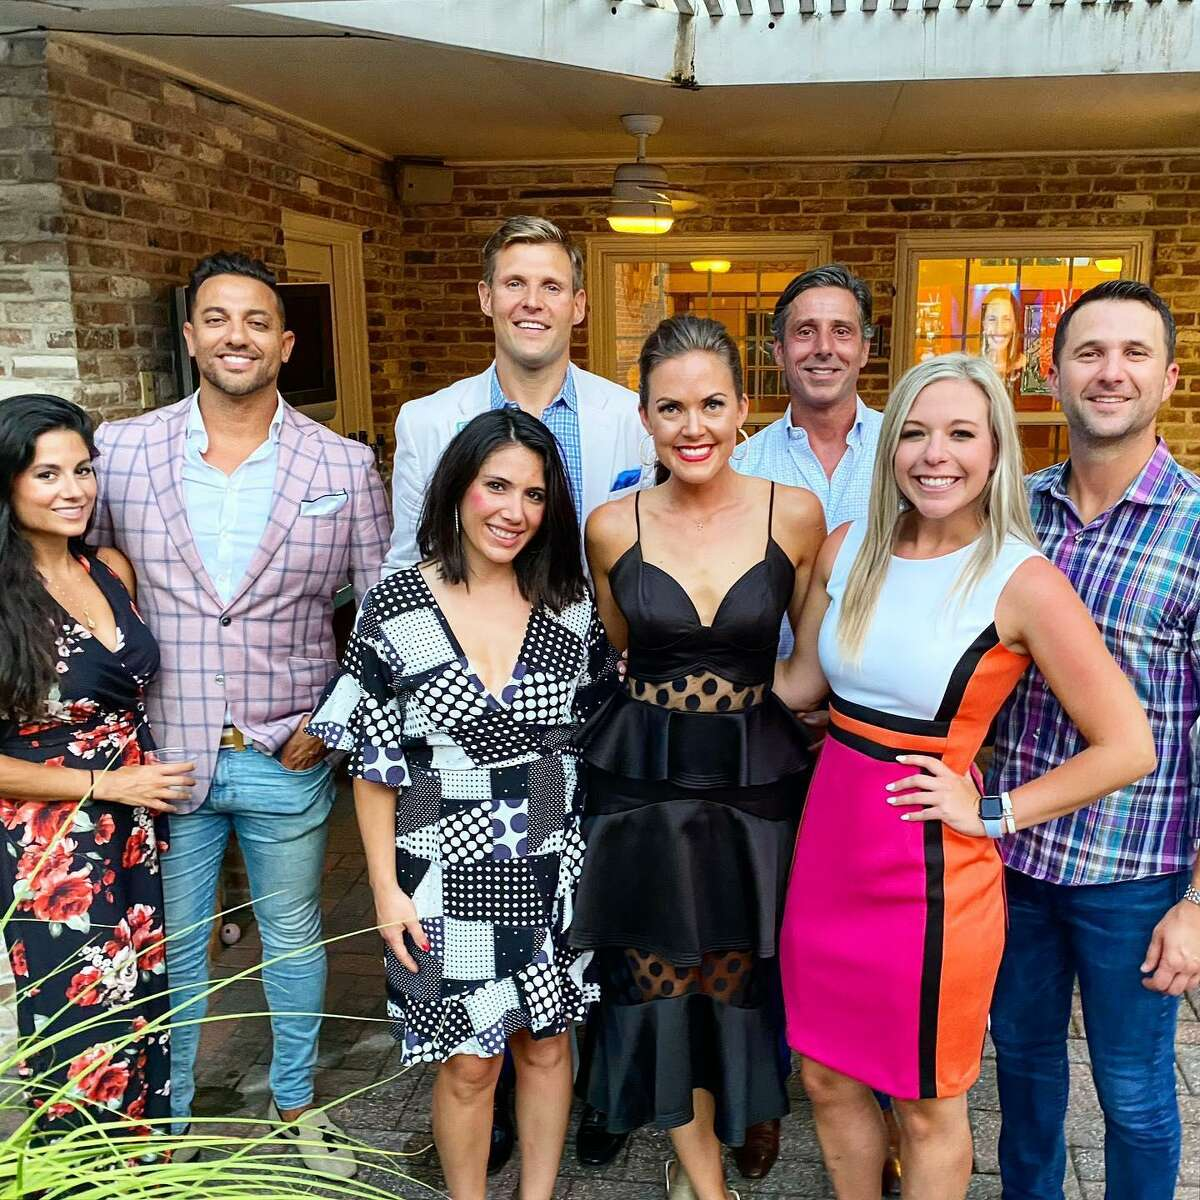 Leukemia & Lymphoma Society's Woman of the Year Lauren Paine, center front, celebrates her victory with friends and 2020 gala co-chair Scott Gildea, back row, second from right.